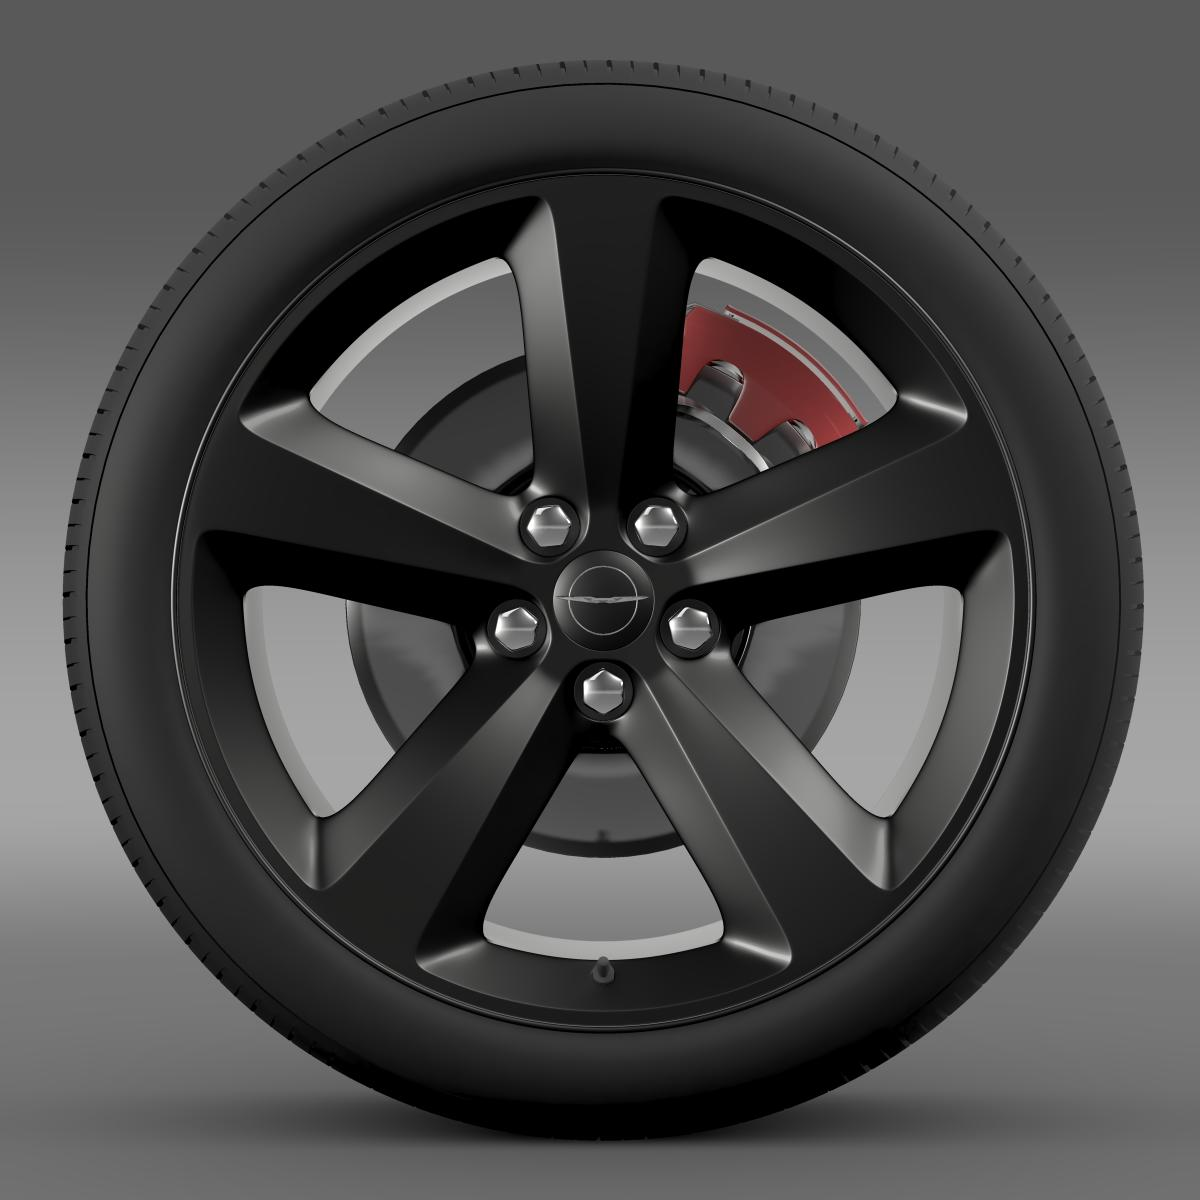 chrysler 300s wheel 3d model 3ds max fbx c4d lwo ma mb hrc xsi obj 210669